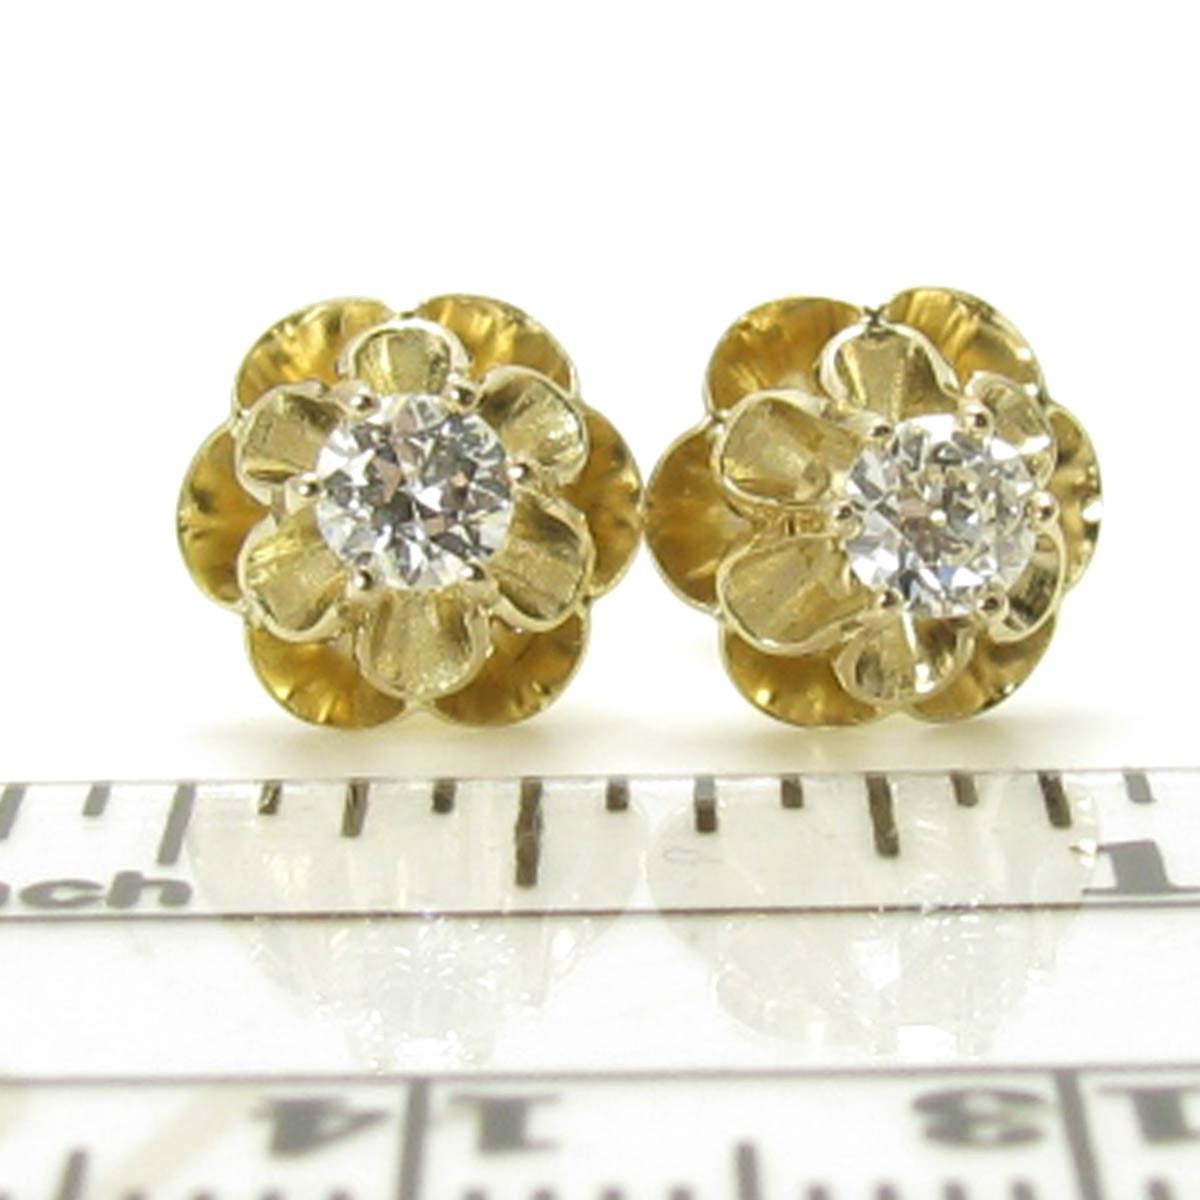 3ab6c6c5f ... Vintage Diamond Stud Earrings in 14K Gold Buttercup Settings, Appraised  $1250 ...